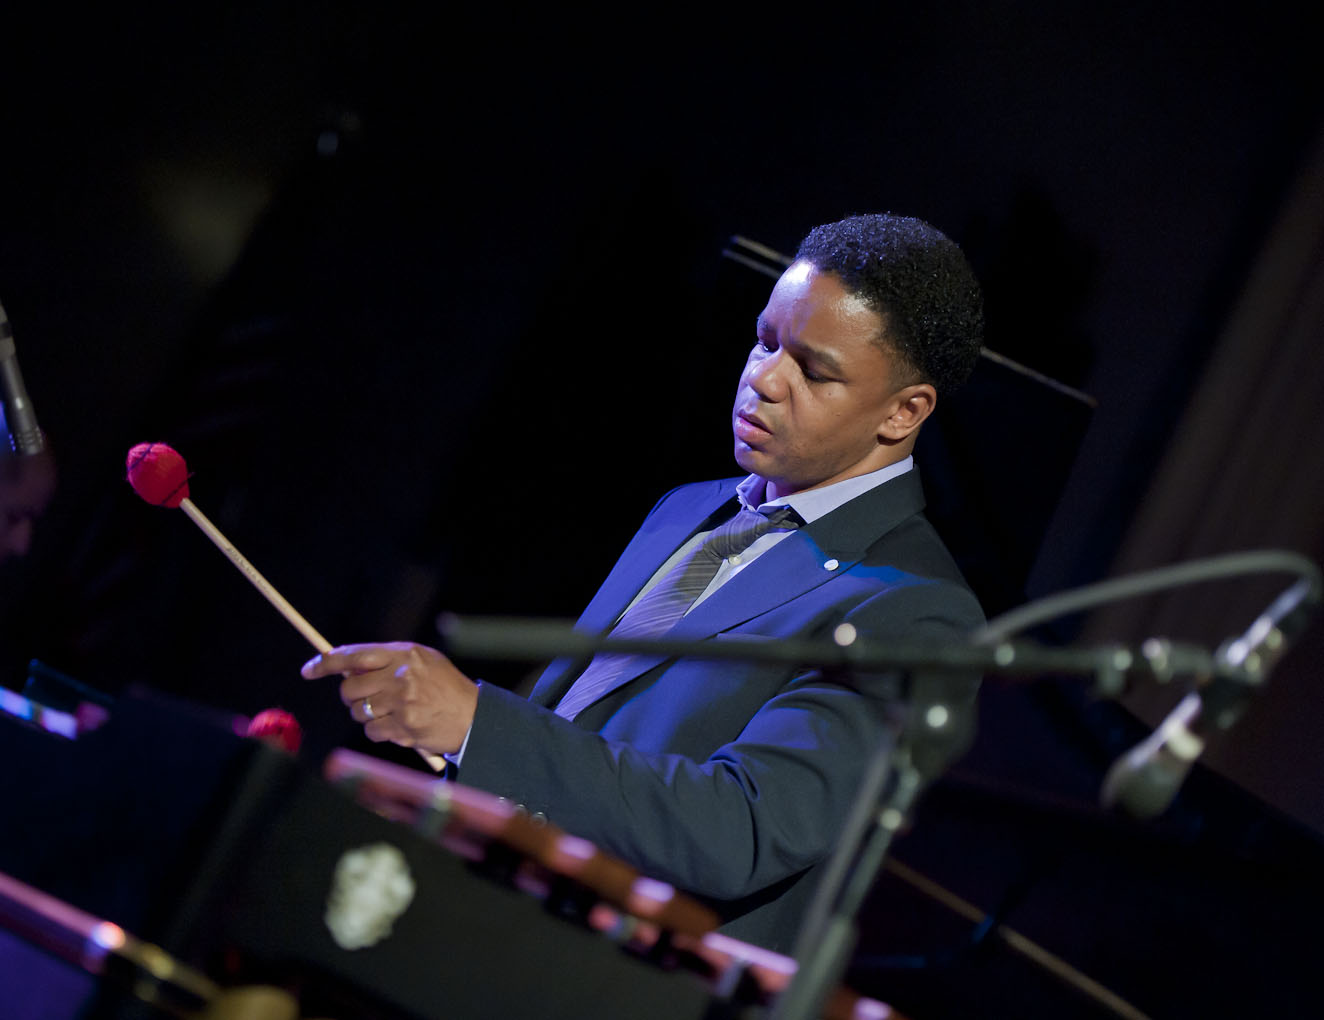 Stefon harris performs with ninety miles